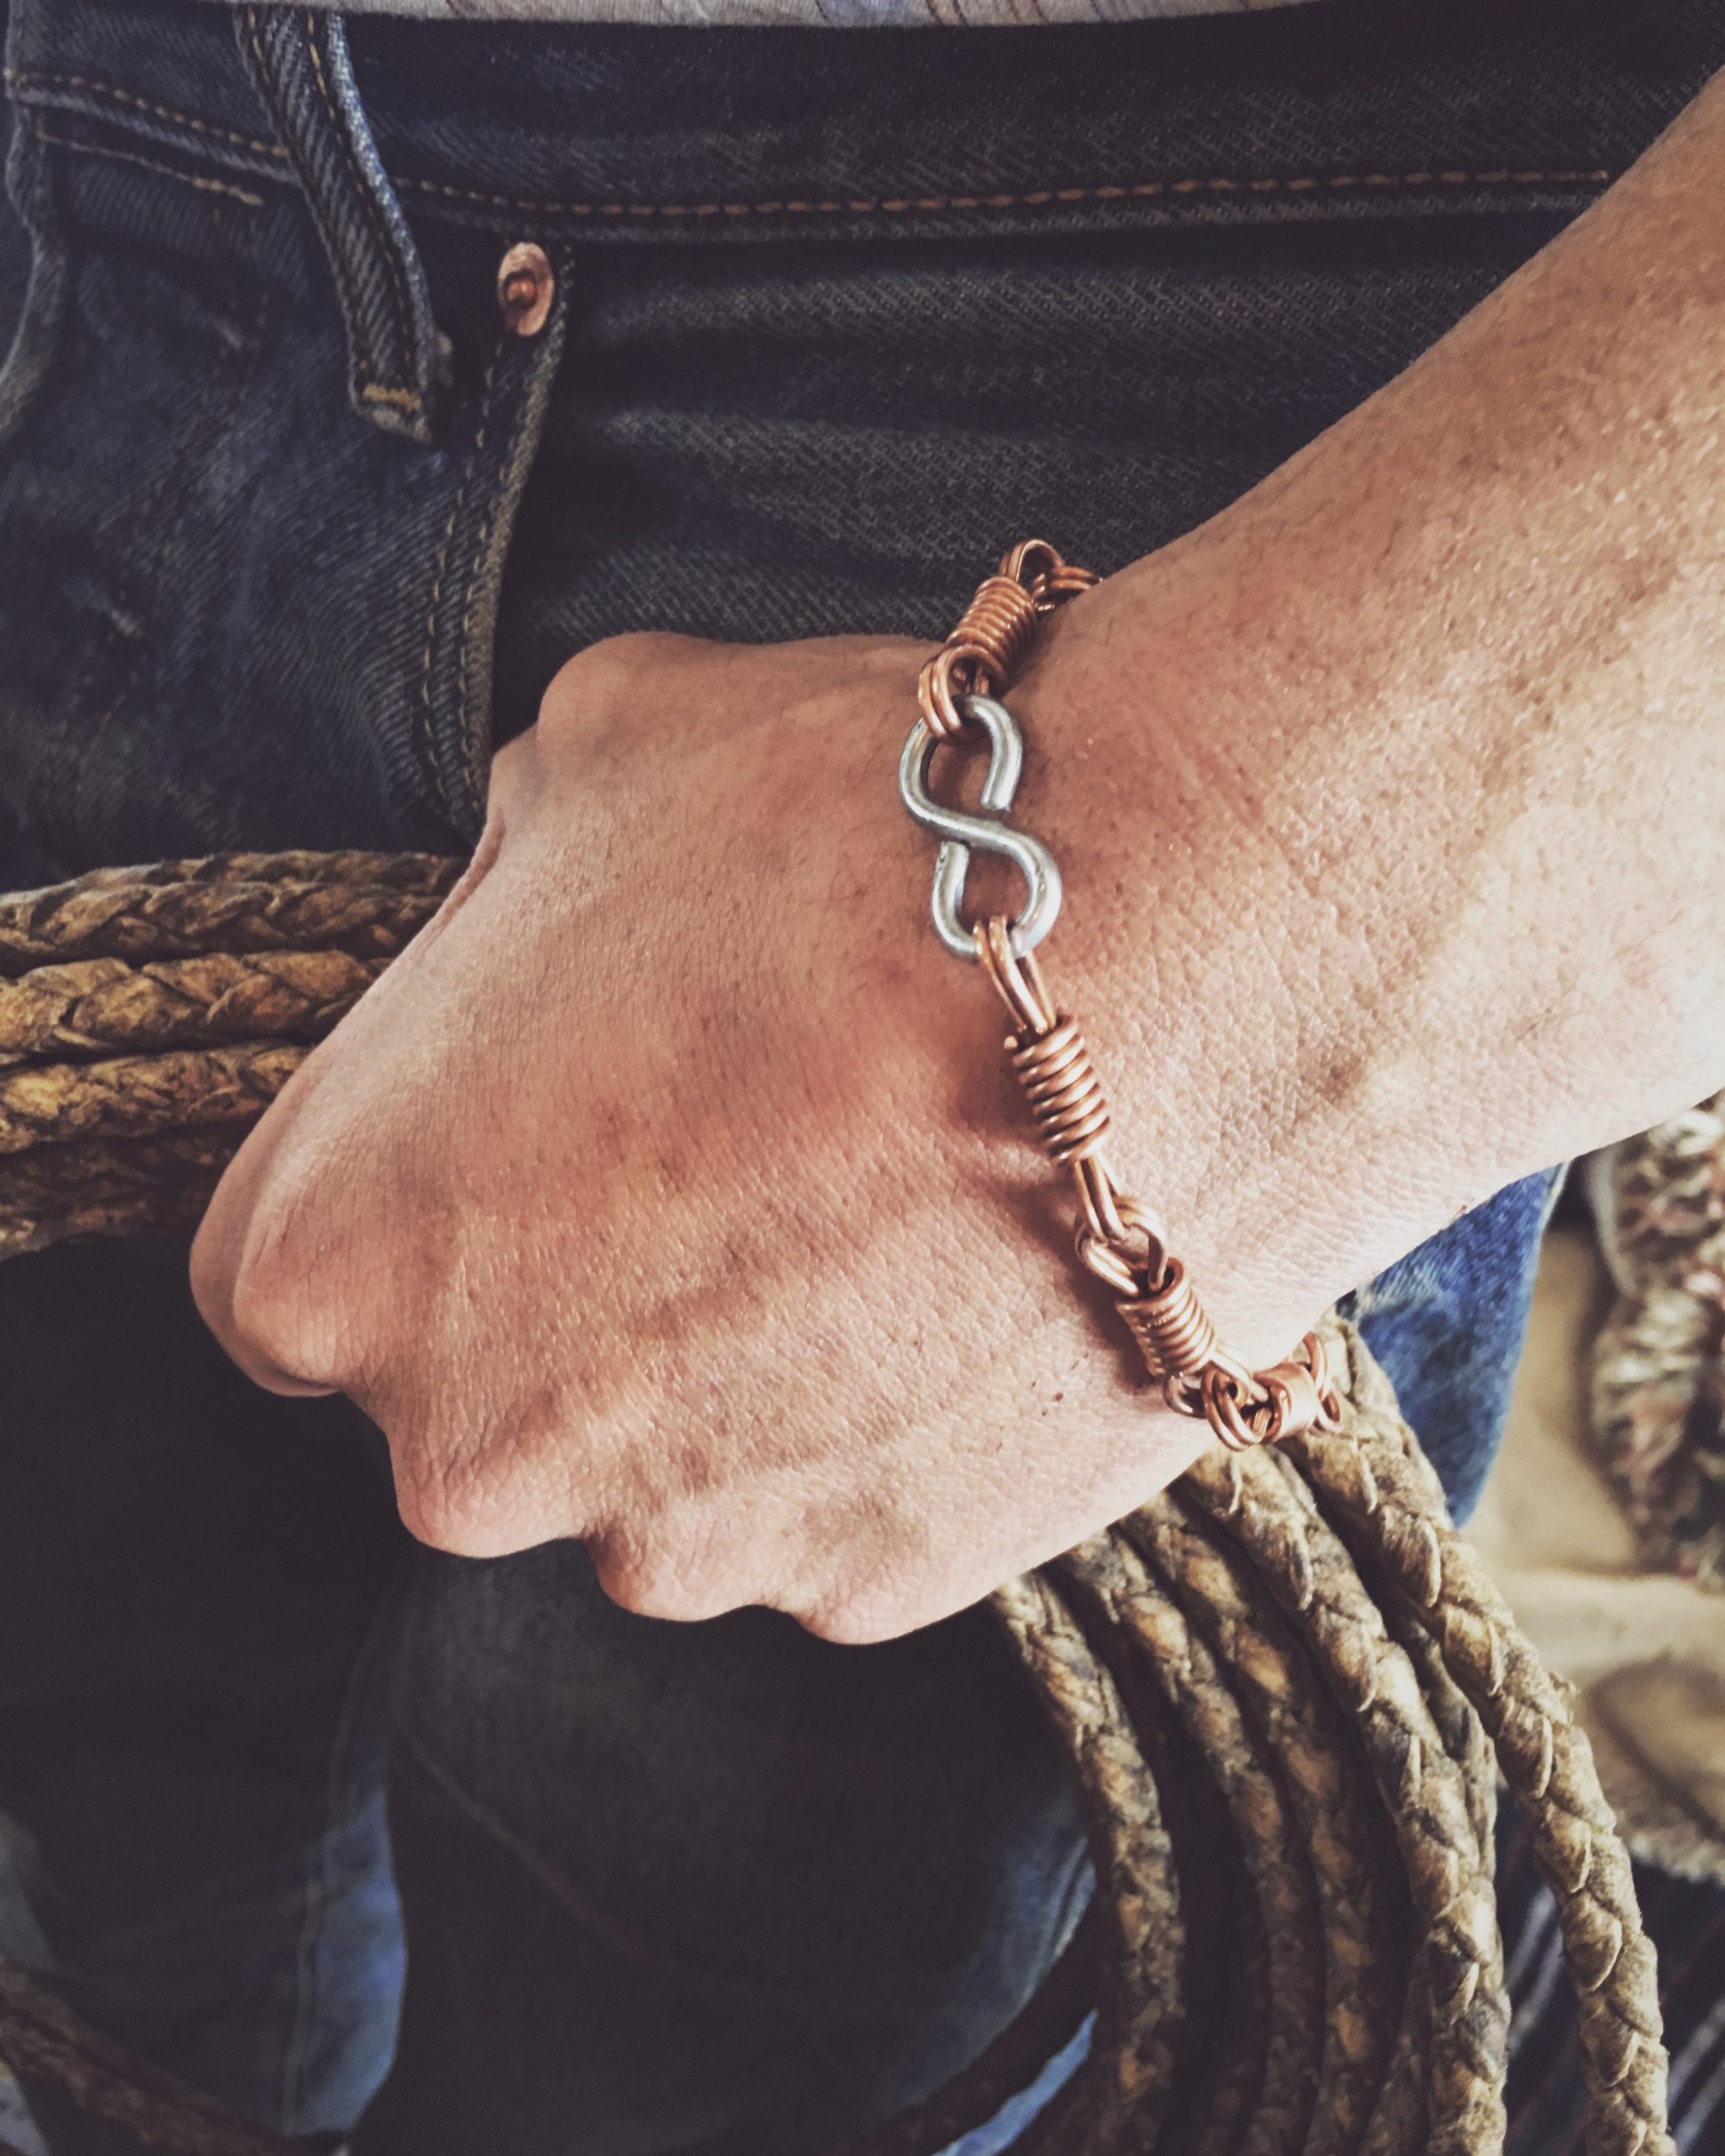 Ceily Rae Photography & Design Products Rein Chains Bracelets Jewelry